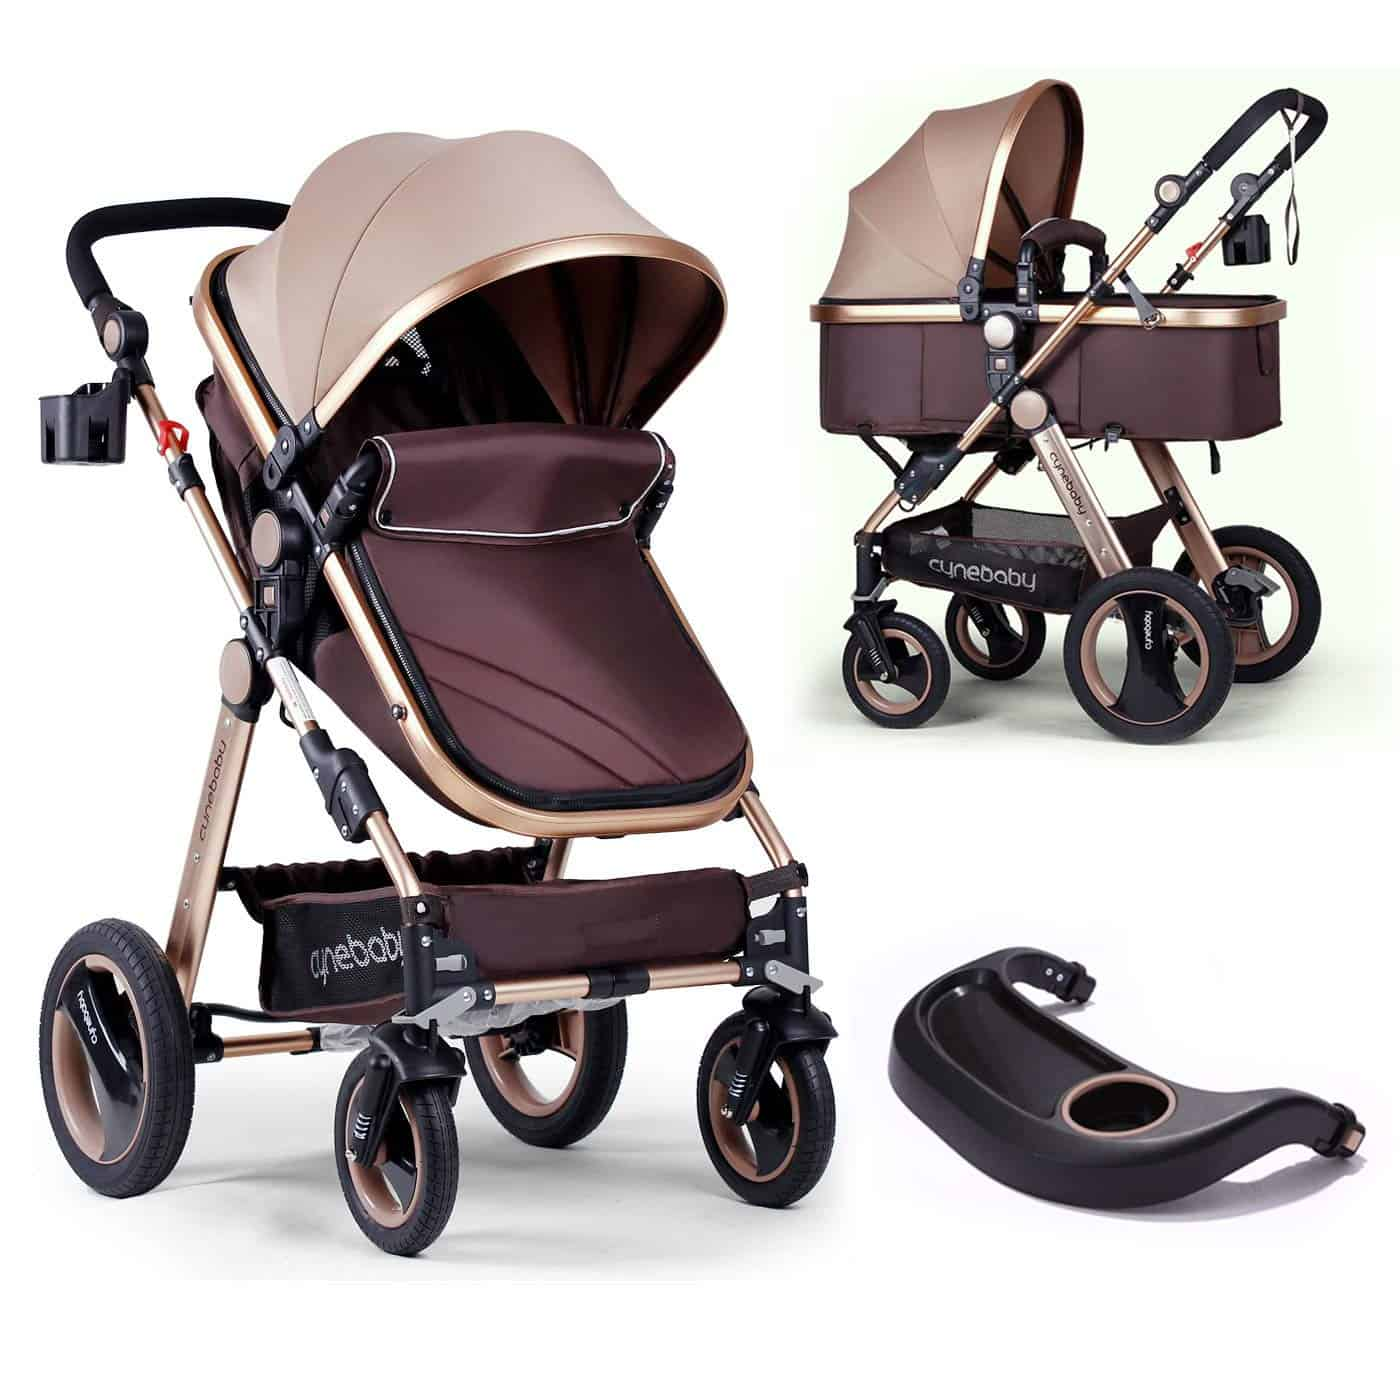 Looking For A Baby Stroller?